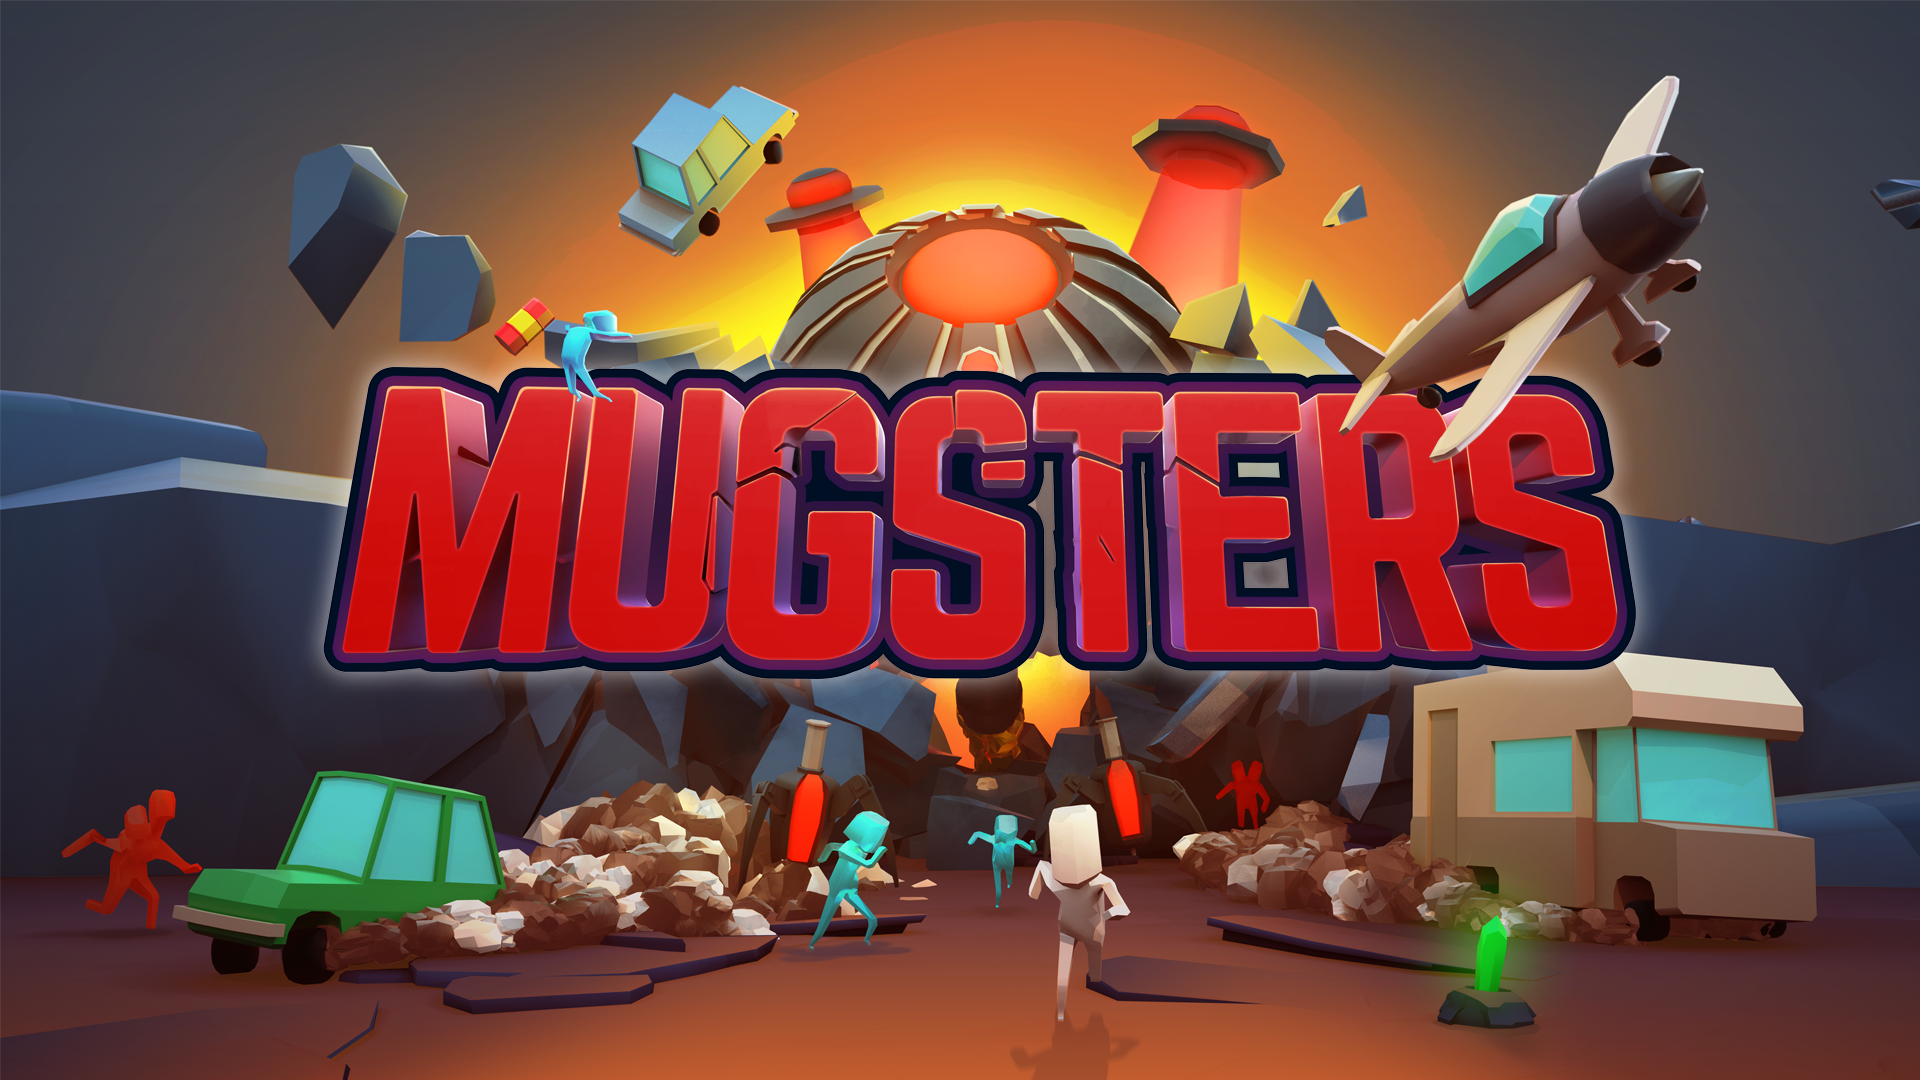 Mugsters arrives on July 17th